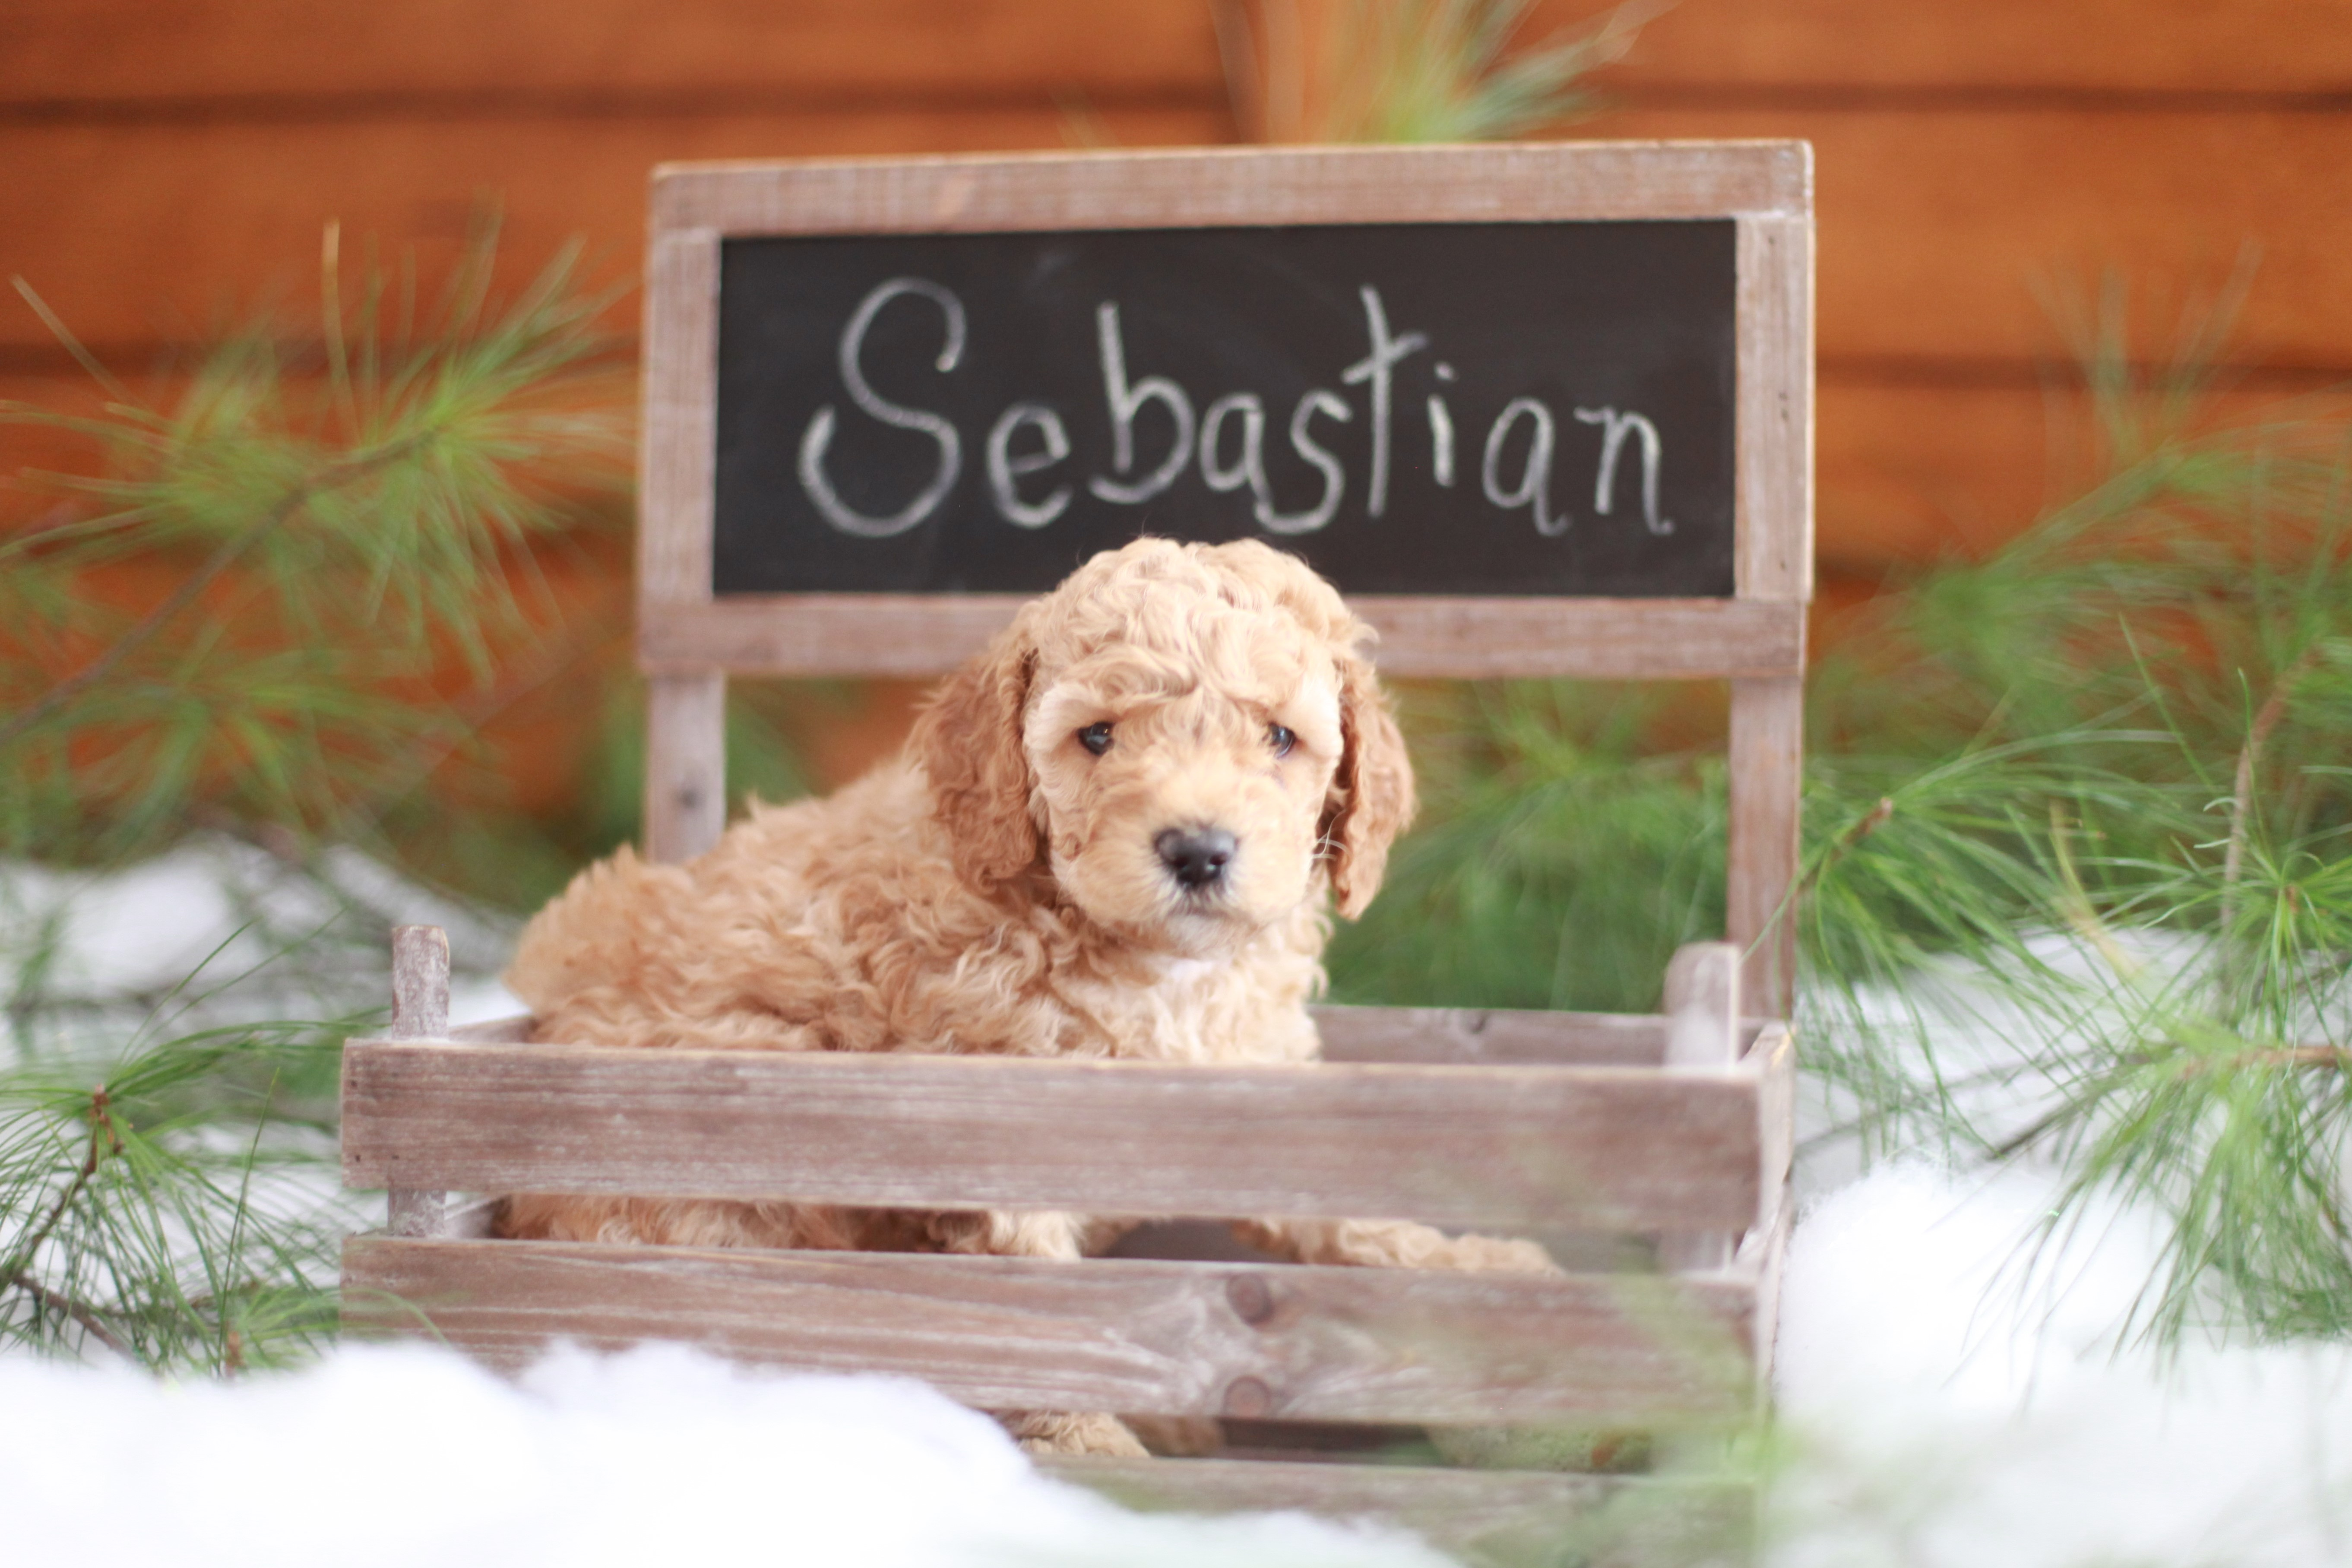 Sebastian in Chalkboard Box